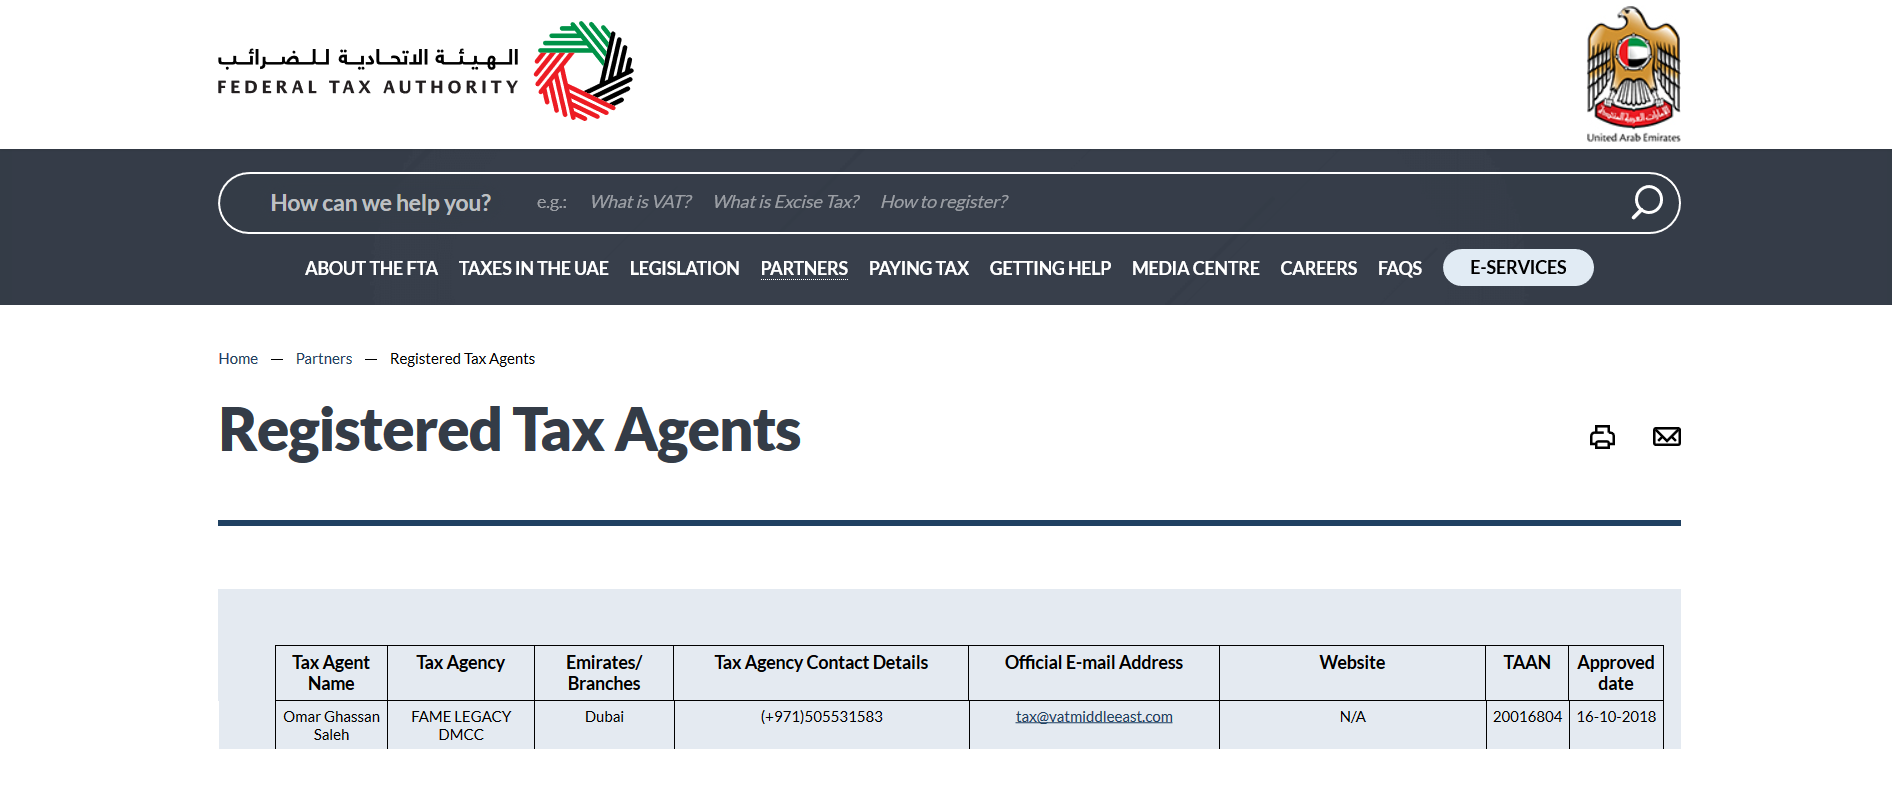 Tax-Agents,Tax-Agency